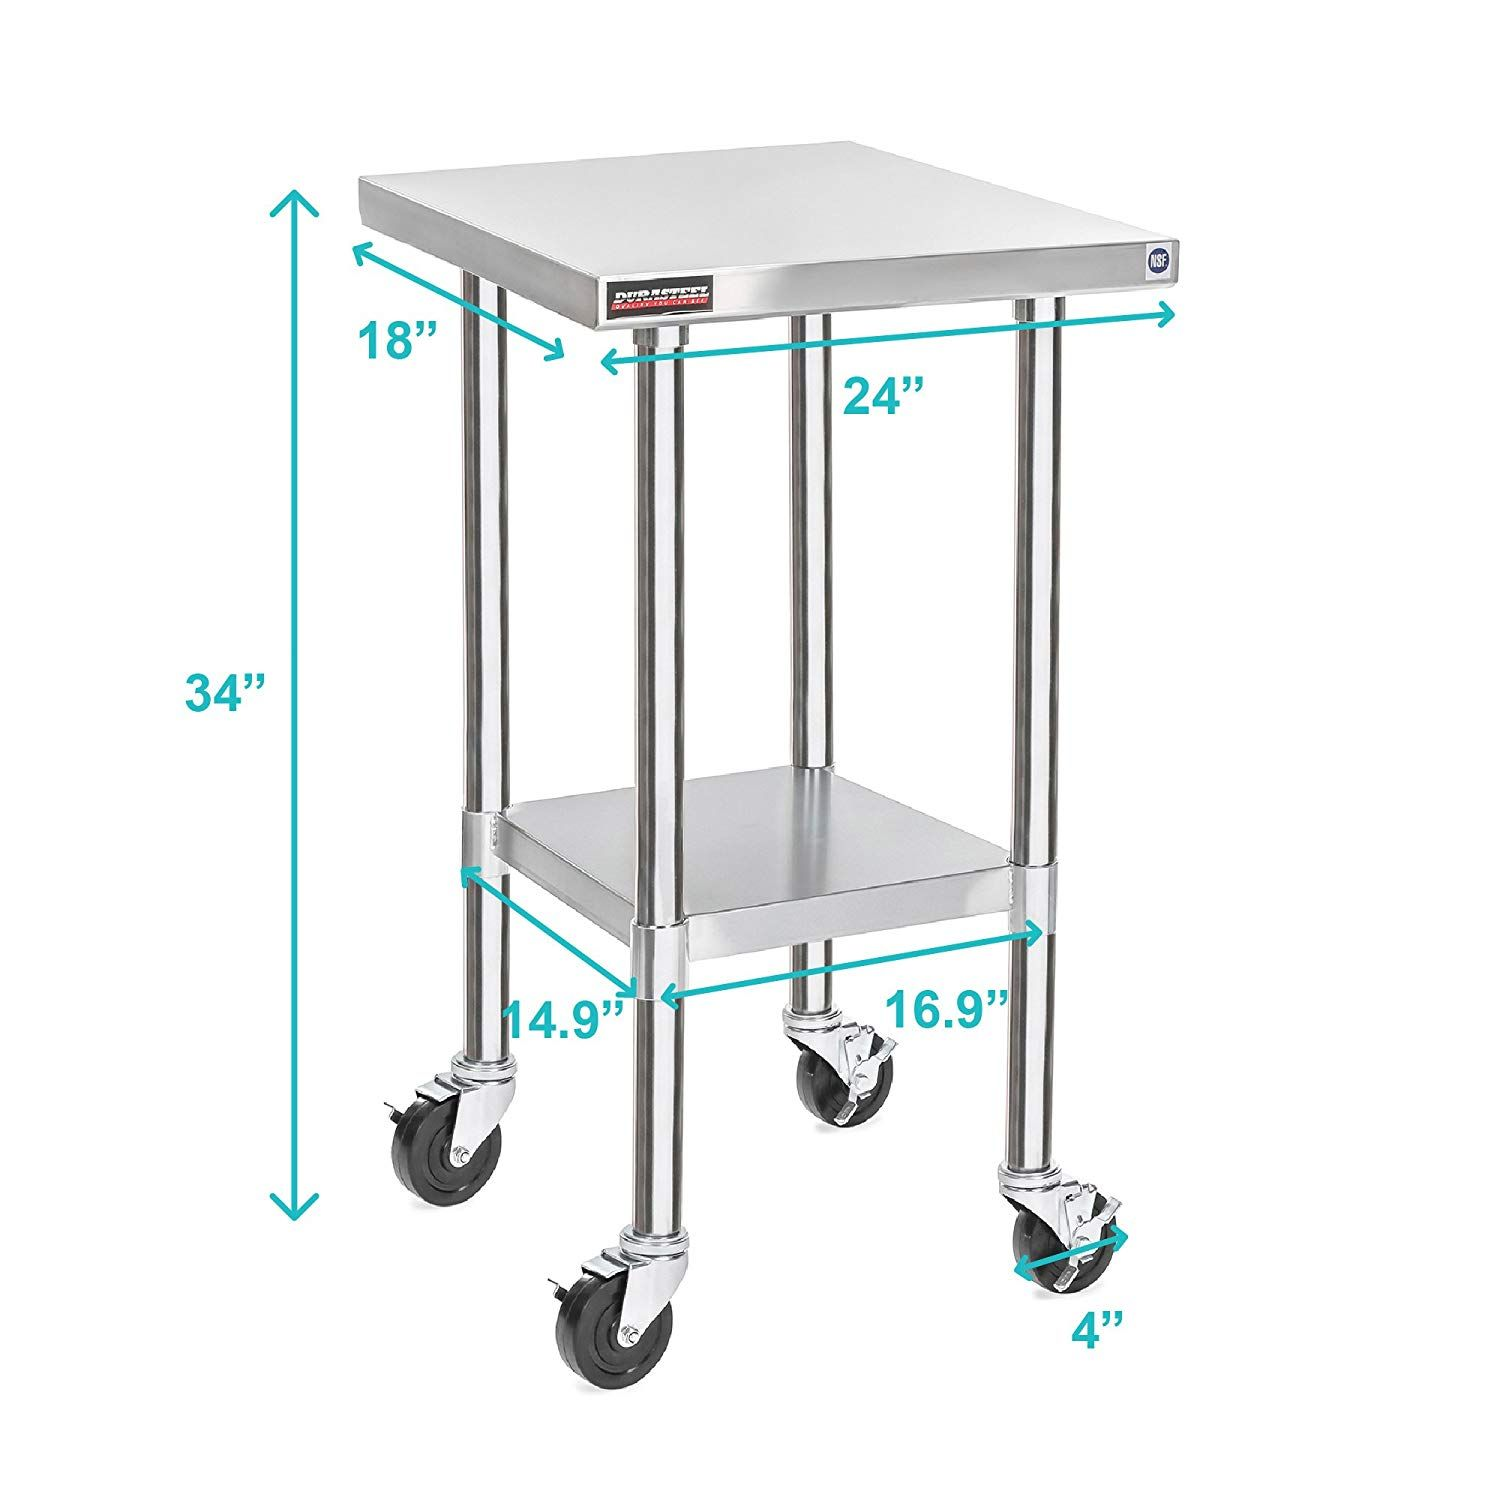 Amazon Com Durasteel Worktable Stainless Steel Food Prep 24 X 12 X 34 Height With 4 Caster Wheels Work Stainless Steel Work Table Work Table Casters Wheels